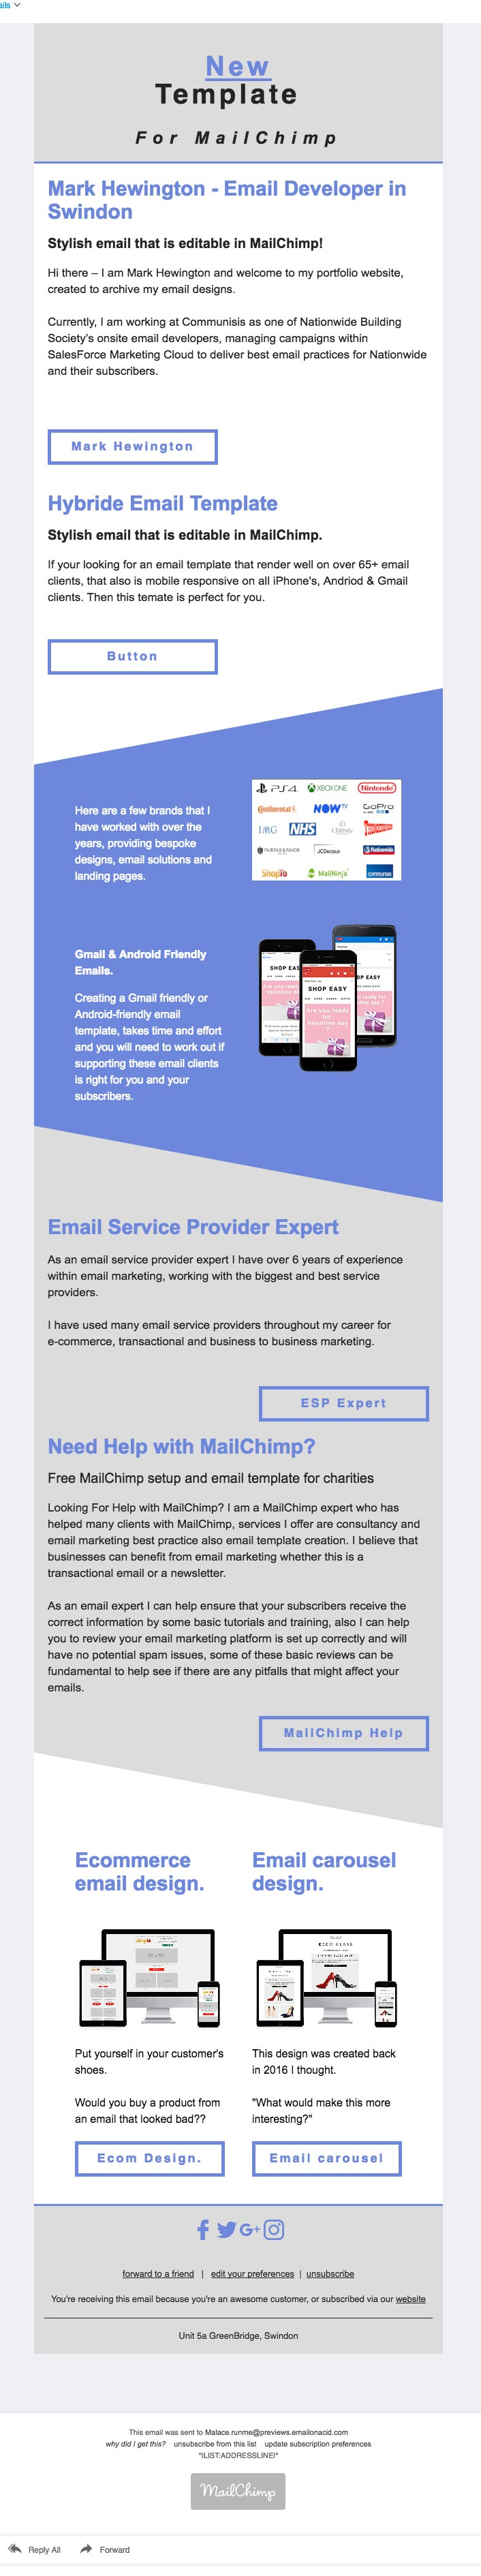 Editable MailChimp Email Template for AOL web clients